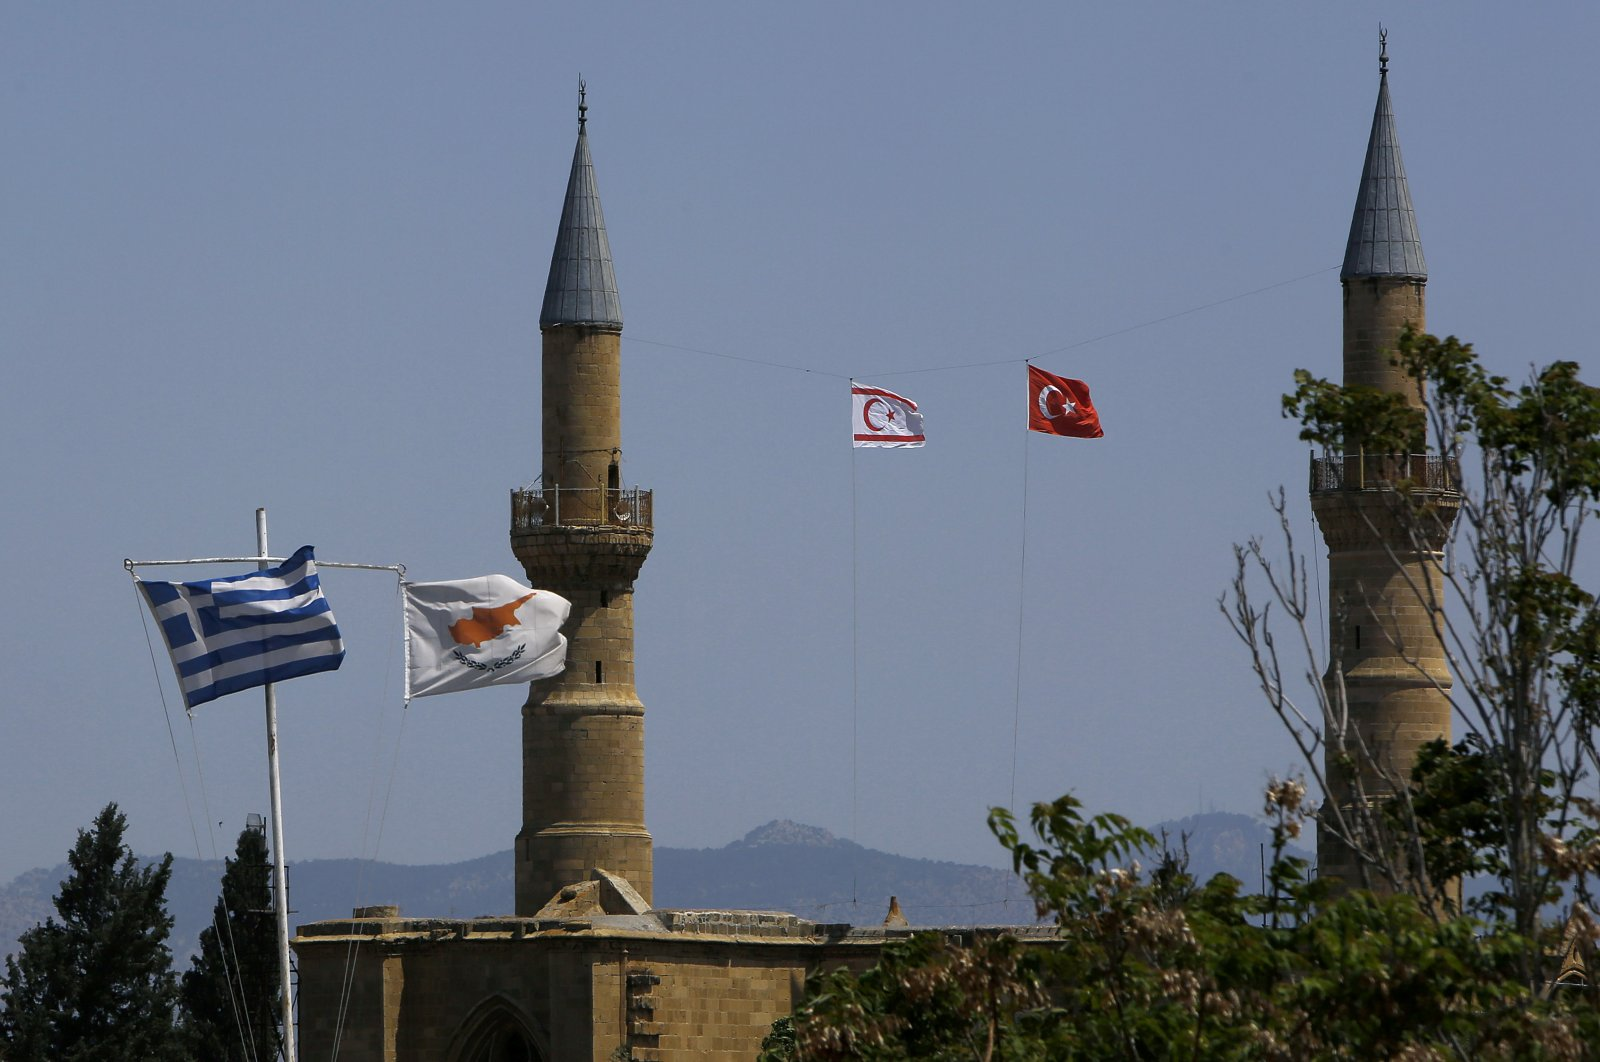 Greek (L) and the Greek Cypriot administration' flags (2nd L) flutter on poles in the south, as in the north, a Turkish (R) and Turkish Cypriot (2nd R) flags fly on a minaret of the Selimiye mosque in the divided capital Lefkoşa (Nicosia), Cyprus, April 26, 2021. (AP Photo)